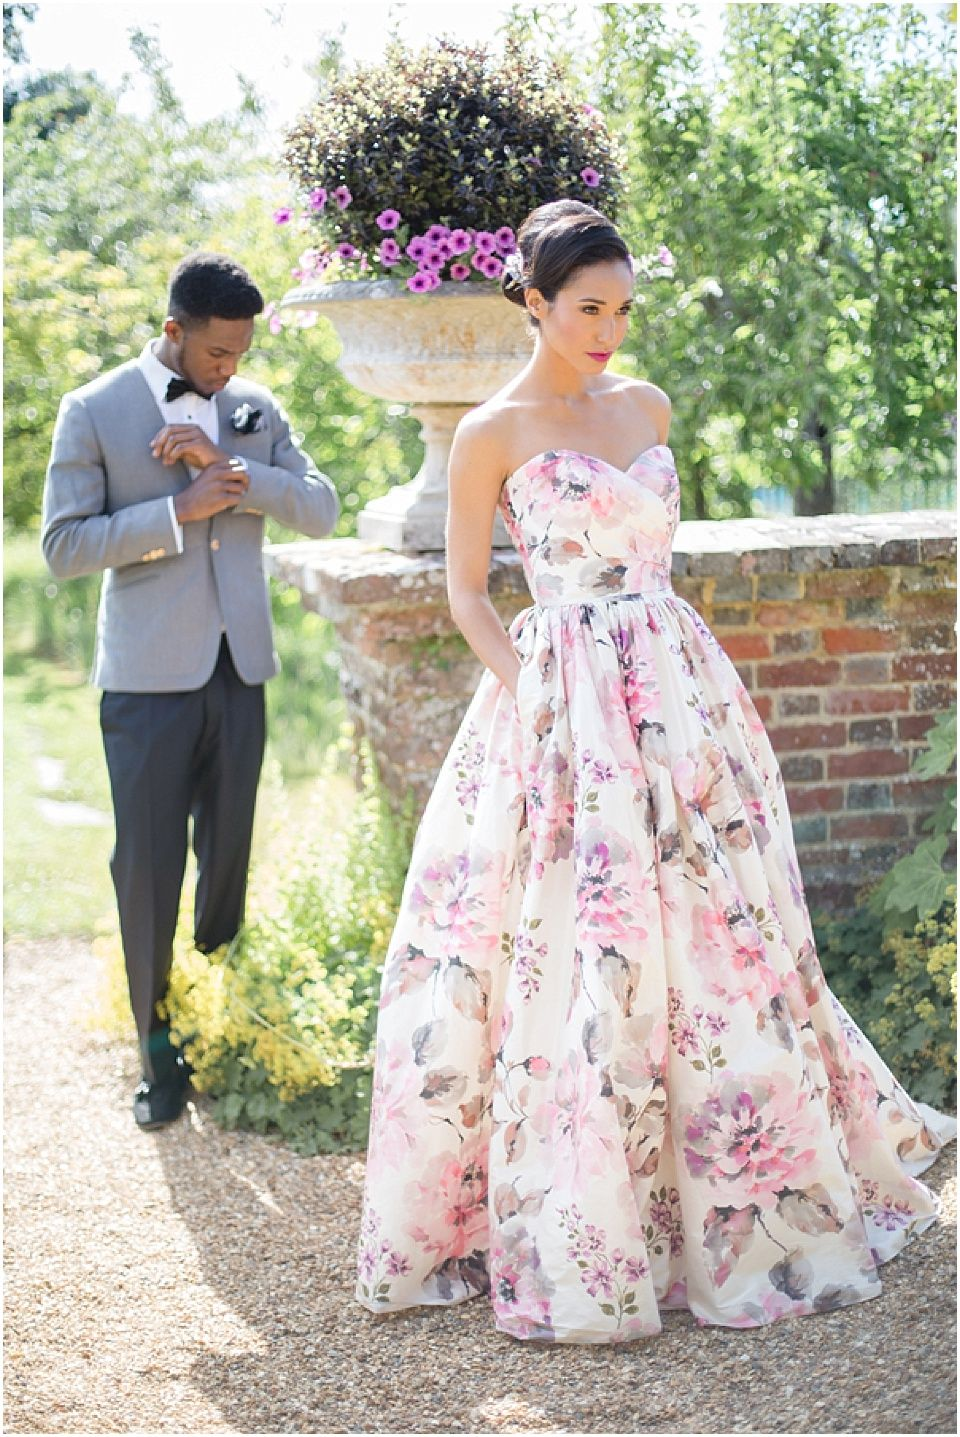 Flower print wedding gown  Wendy Makin floral print wedding gown  Wedding Dresses  Pinterest